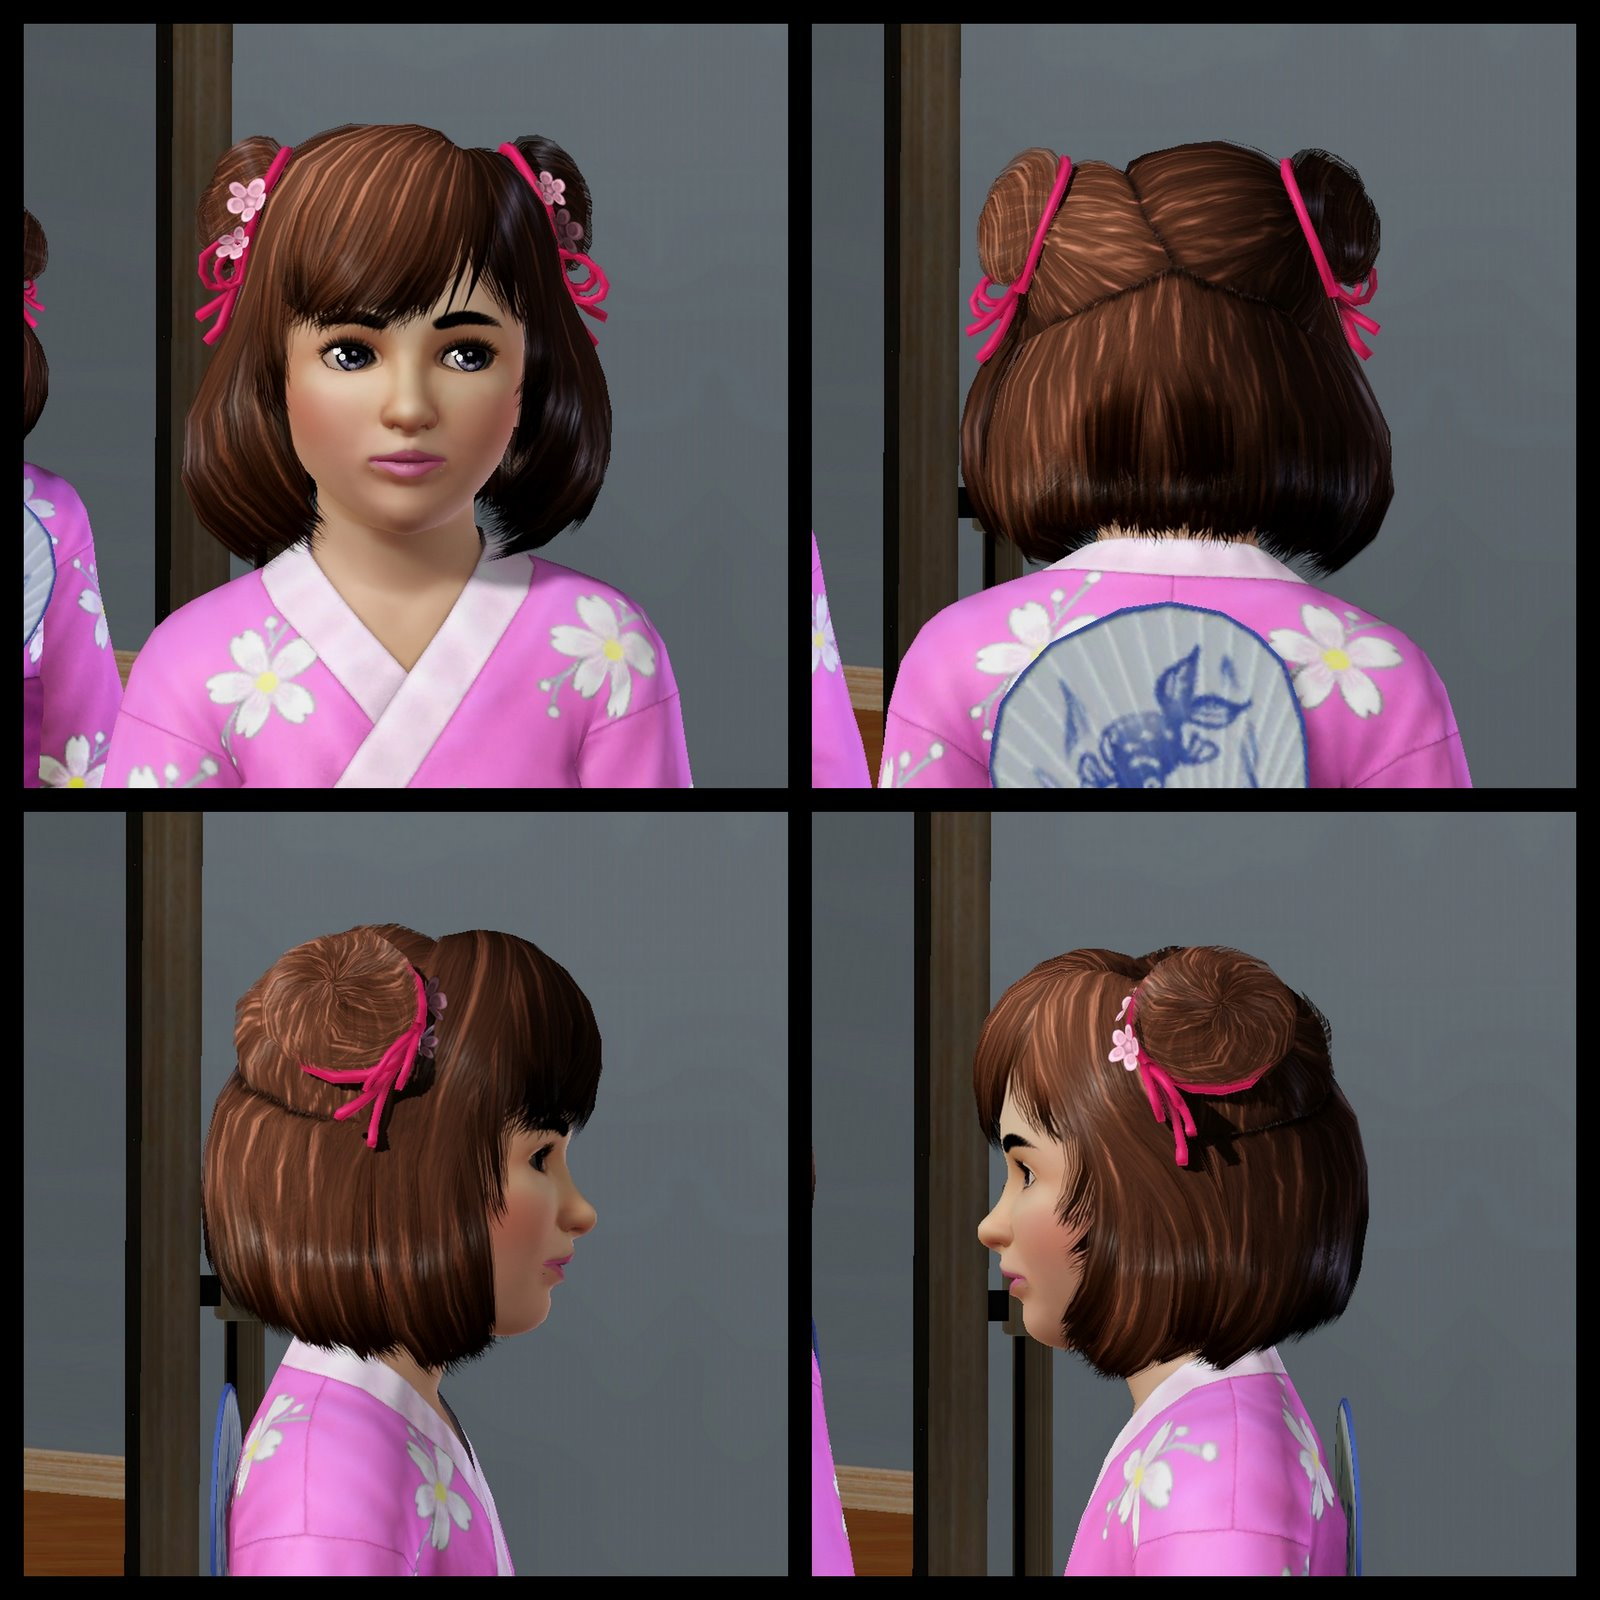 The Sims 3 Store Hair Showroom Japanese Inspired Clothing